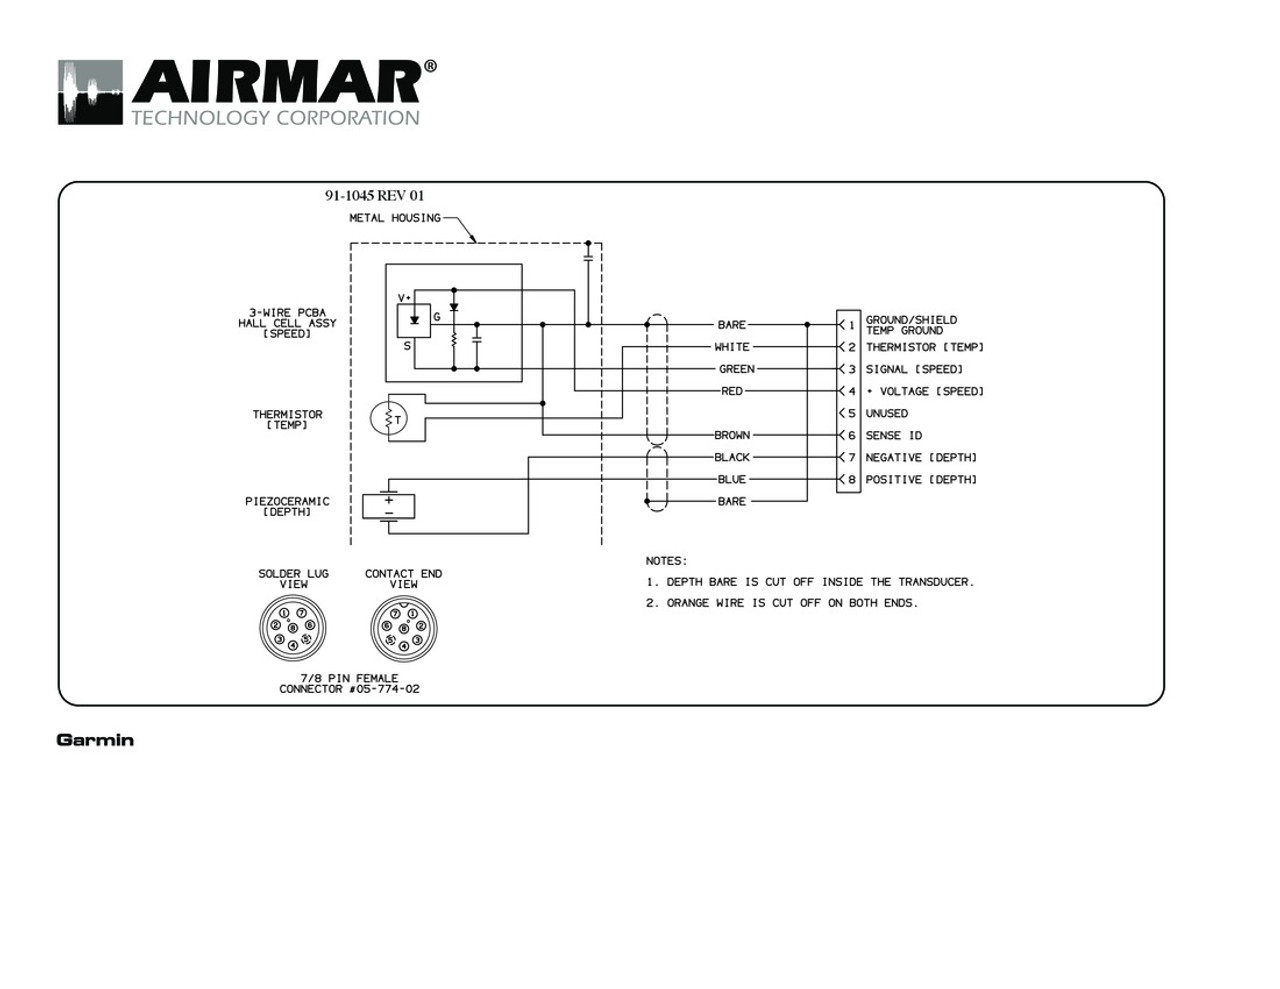 Wire Trolling Motor Plug Wiring Diagram on trolling motor connections, 12 wire motor wiring diagram, 12 volt electric motor wiring diagram, trolling motor plugs and receptacles, brute trolling motor wiring diagram, 36v trolling motor wiring diagram, navigator trolling motor wiring diagram, 24 volt wiring diagram, 24 volt trolling motor diagram, 12 volt battery bank wiring diagram, trolling motor circuit breaker wiring diagram, 12 24 trolling motor diagram, 36 volt trolling motor wiring diagram, motorguide trolling motor wiring diagram, marinco trolling motor wiring diagram, minn kota trolling motor wiring diagram, omc trolling motor wiring diagram, trolling motor wiring kit, trolling motor wiring schemes, manual bilge pump wiring diagram,